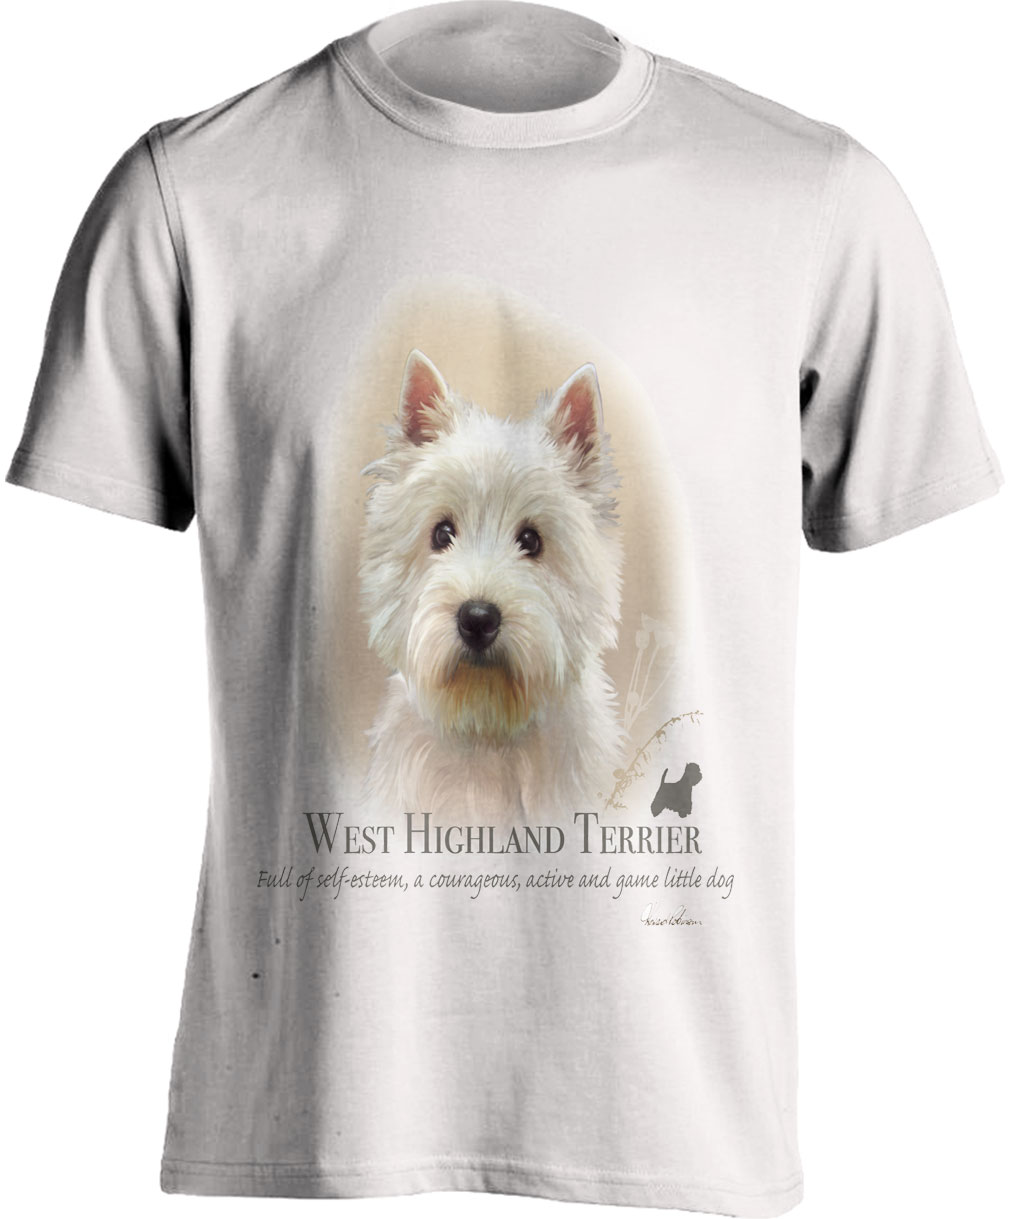 Westie Highland Terrier T Shirt